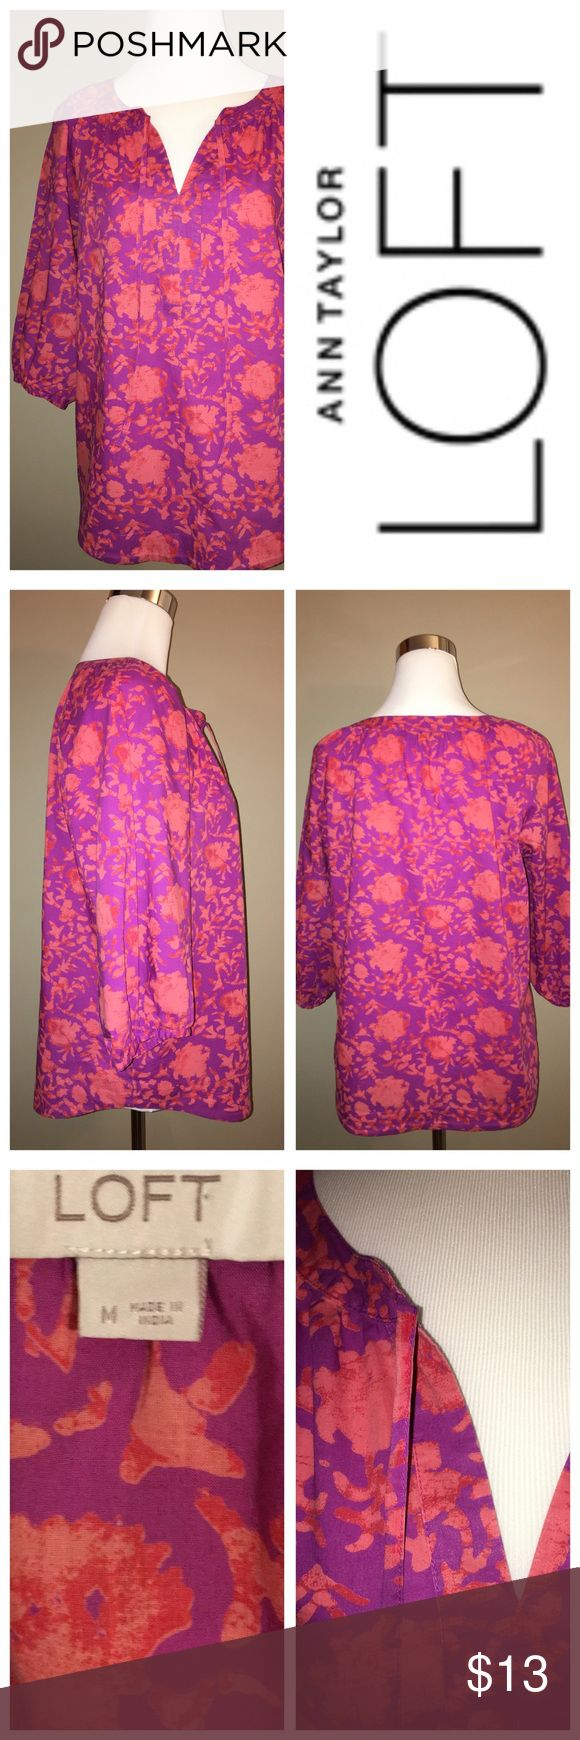 Anne Taylor LOFT Peasant Blouse Beautiful colors! Great with Summer whites or just jeans! LOFT Tops